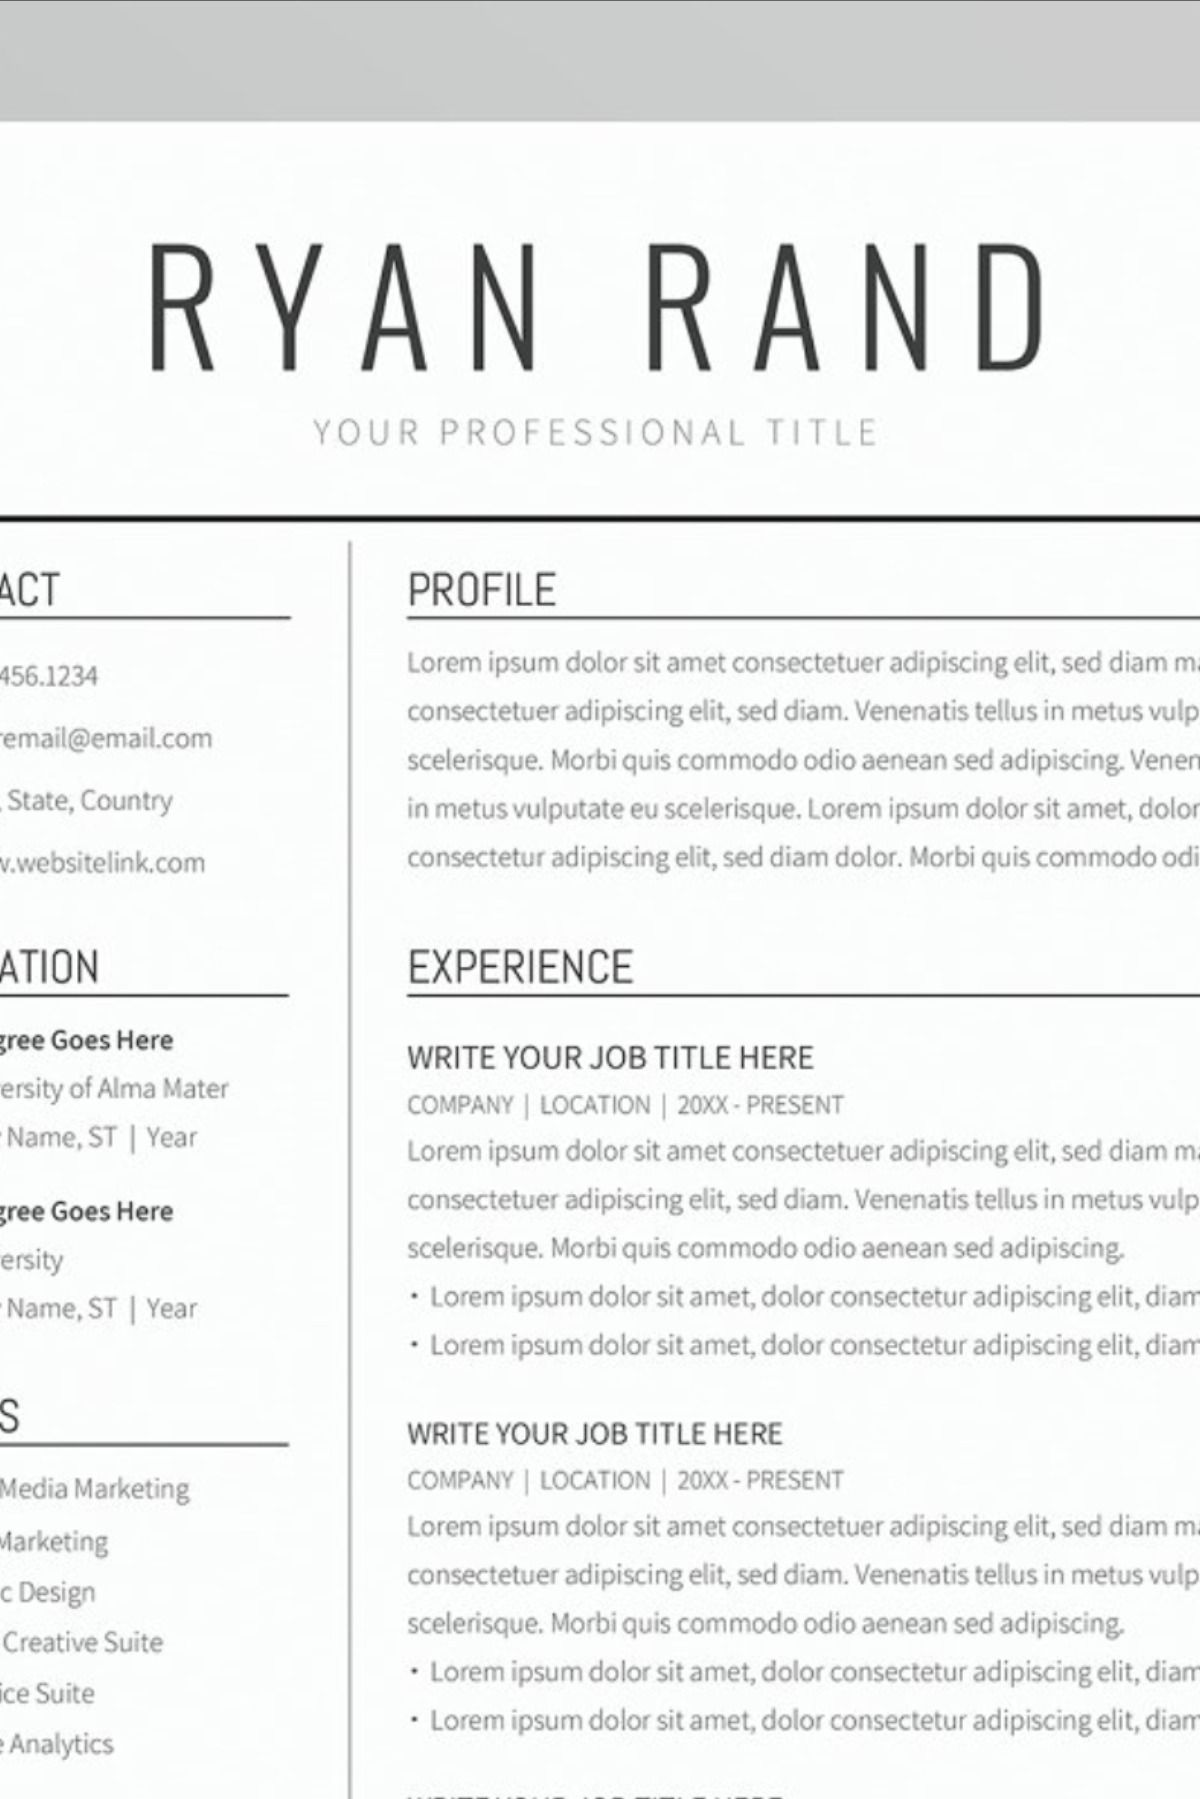 Google Docs Resume Template in 2020 Resume template, Cv